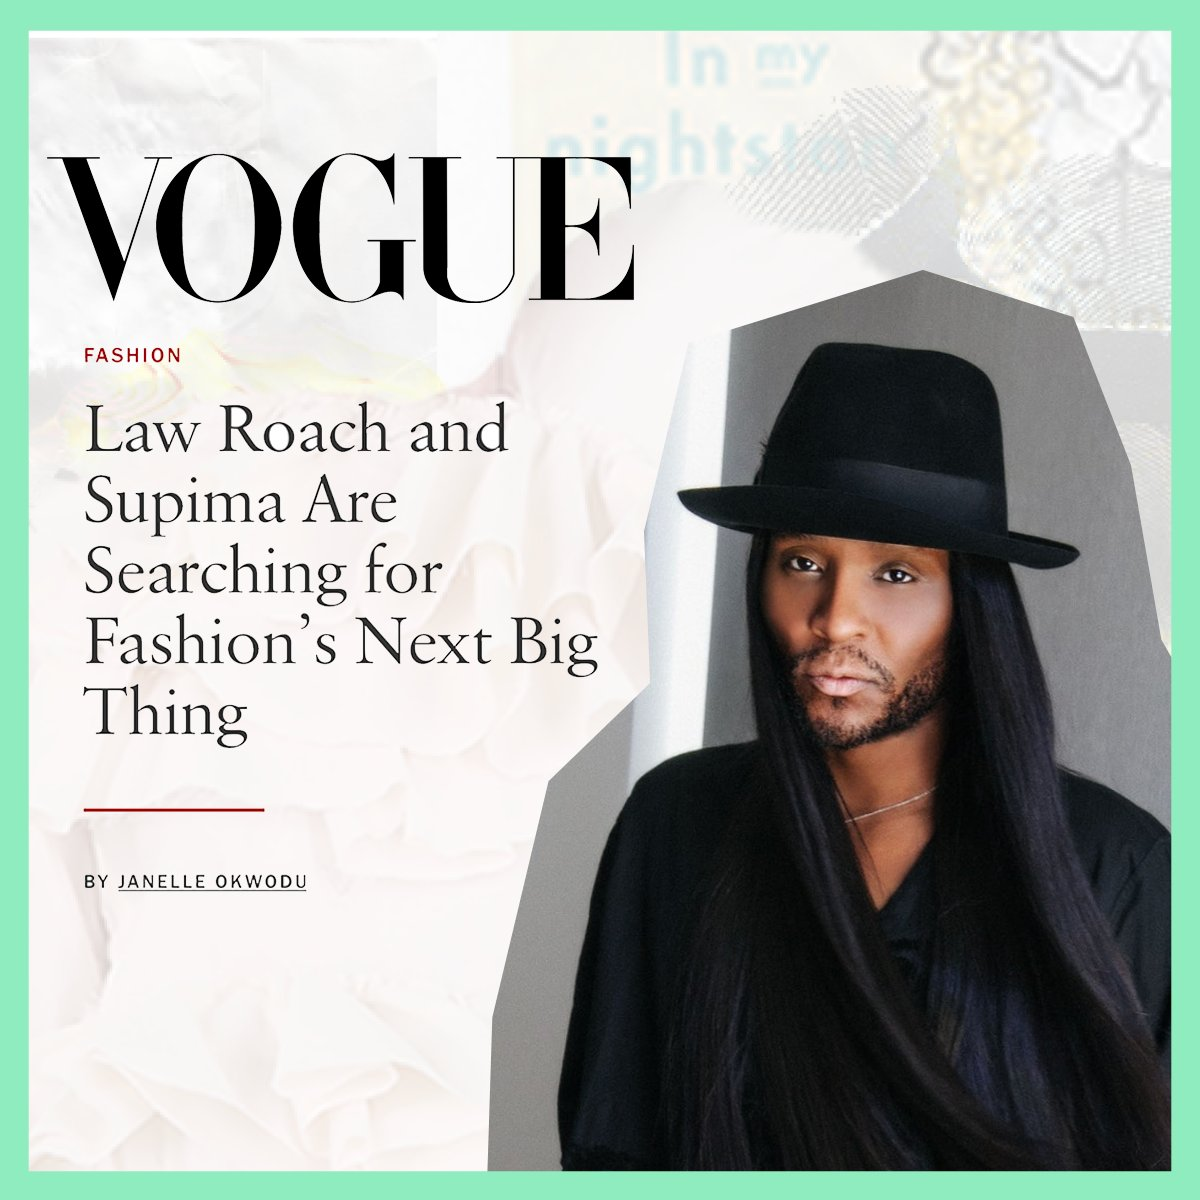 Introducing our host for the 13th Annual #SupimaDesignCompetition: @LUXURYLAW, Image Architect. Read the full story by @voguemagazine and then tune in on 9/10 @3PM ET here for our first virtual show on Instagram LIVE.